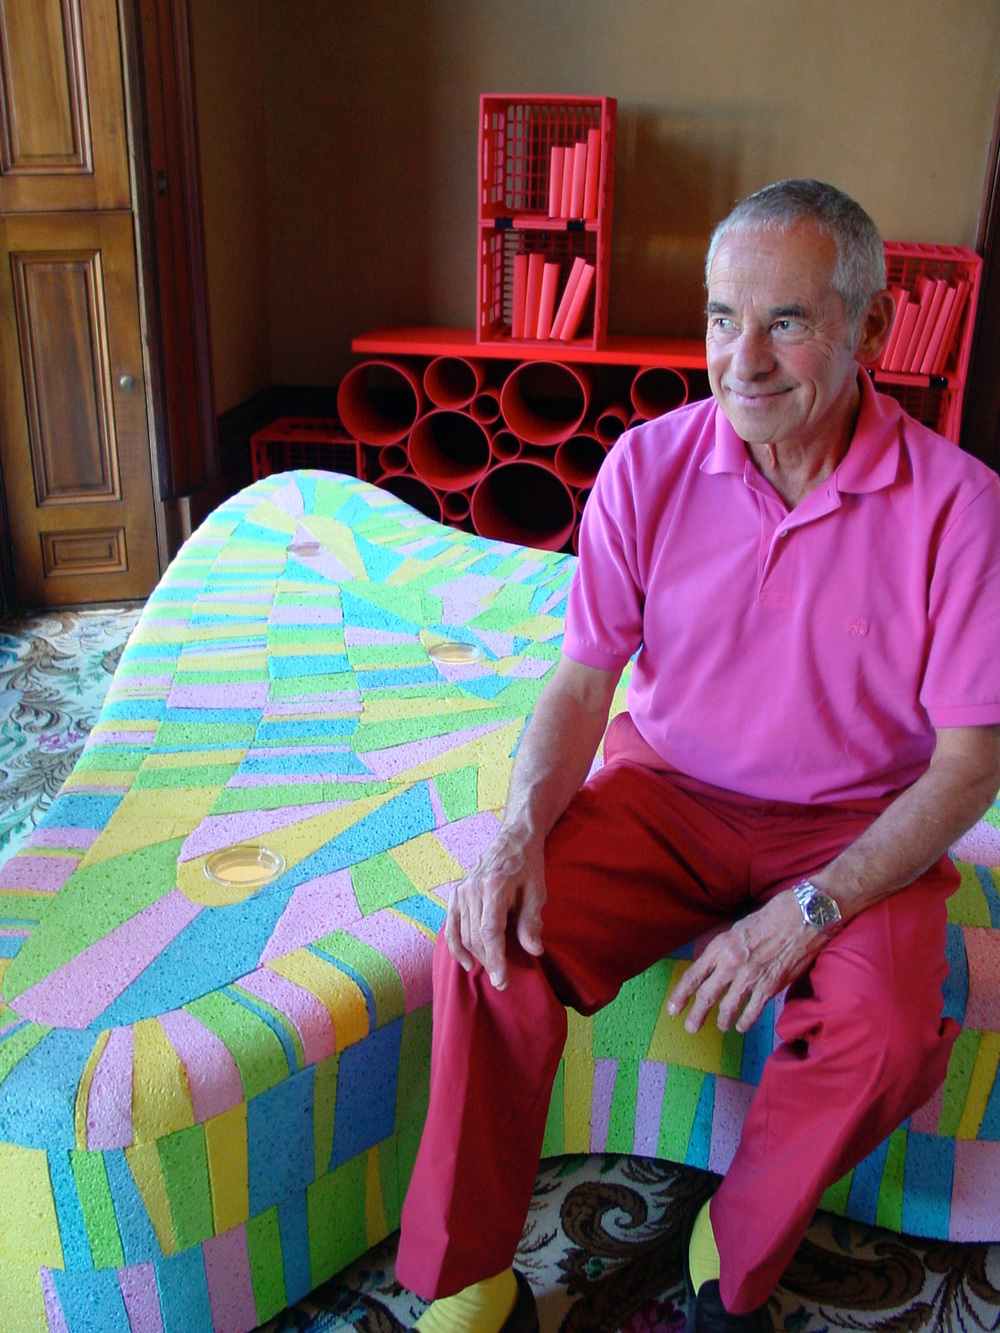 George on his colourful kitchen sponge ottoman at the Changing Spaces exhibition organised by the Historic Houses Trust and held at Elizabeth Bay House in 2006. Photo by Jody Pachniuk.